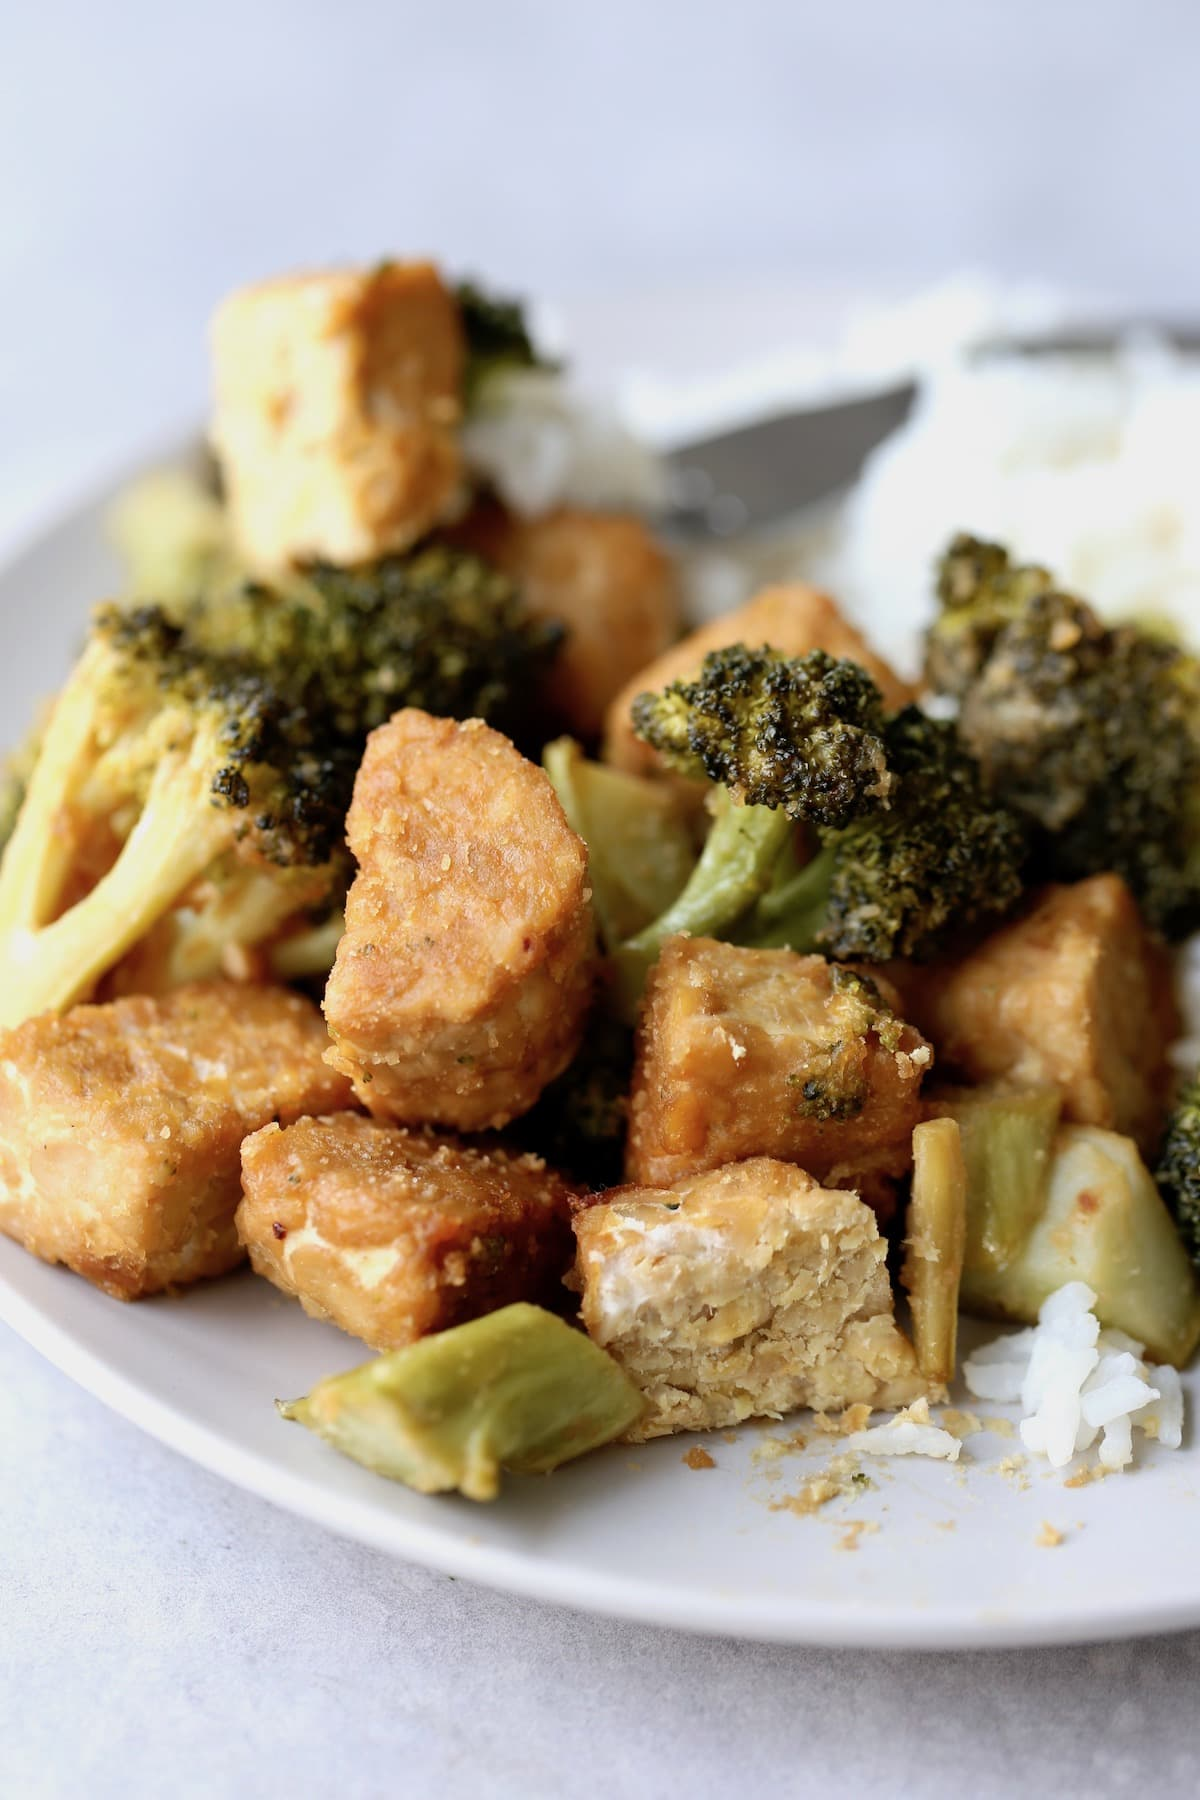 golden brown peanut butter tempeh with broccoli and rice on a plate